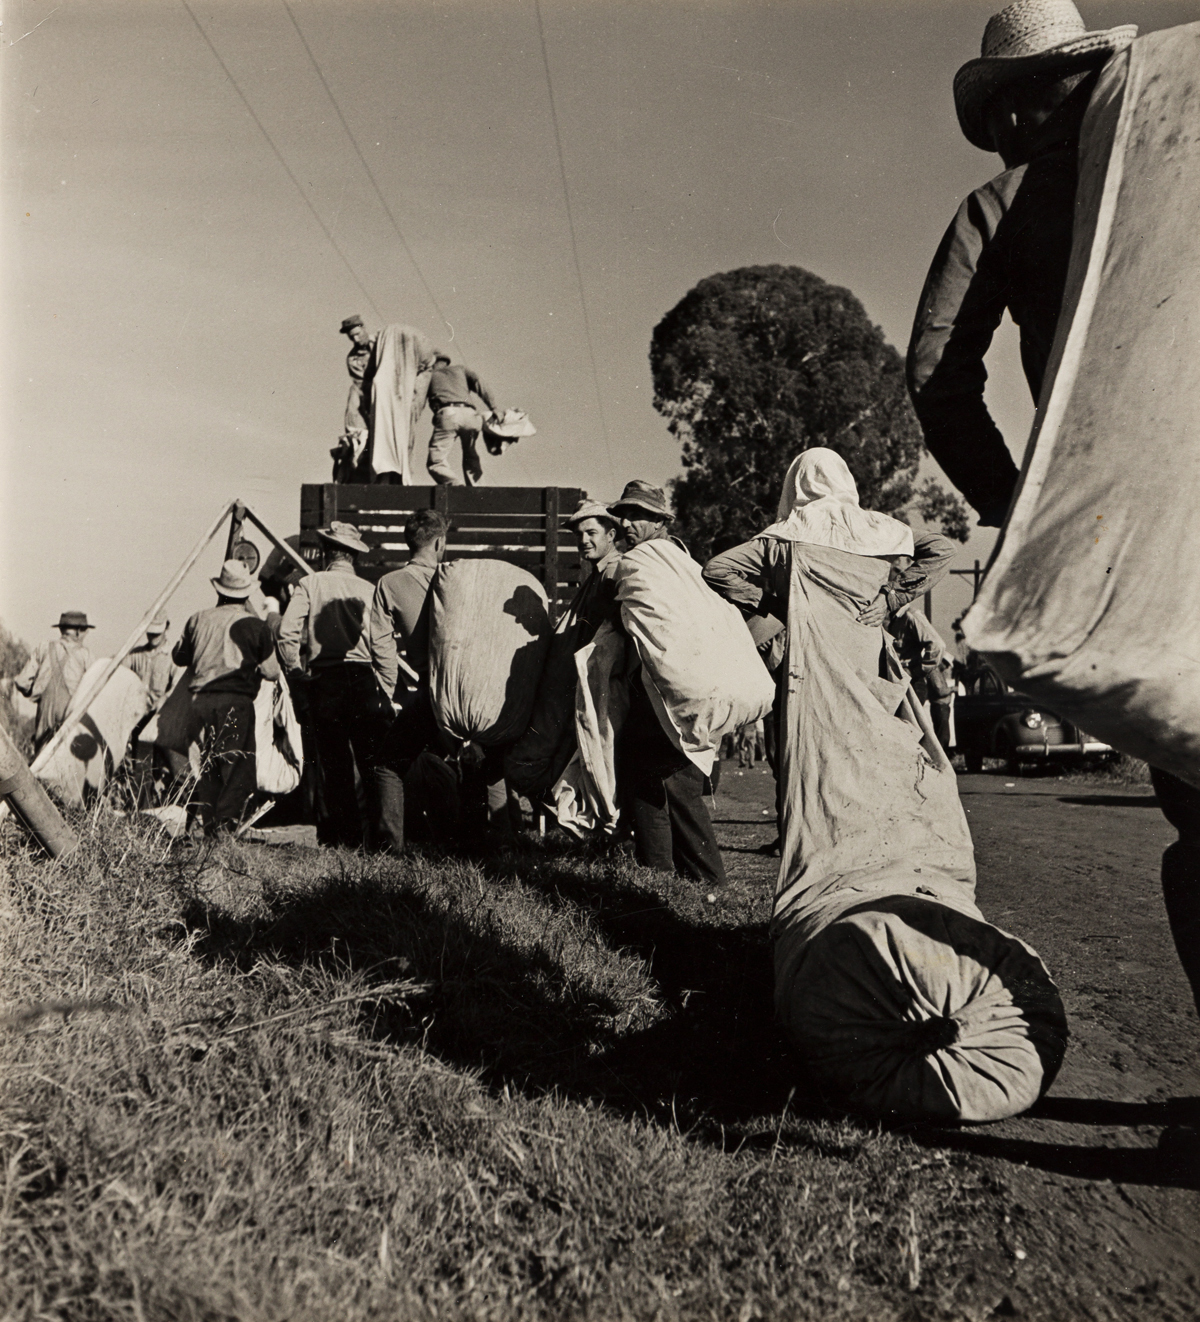 HANSEL MIETH (1909-1998)/OTTO HAGEL (1909-1973) Cotton pickers lining up for weighing in Visalia, California.